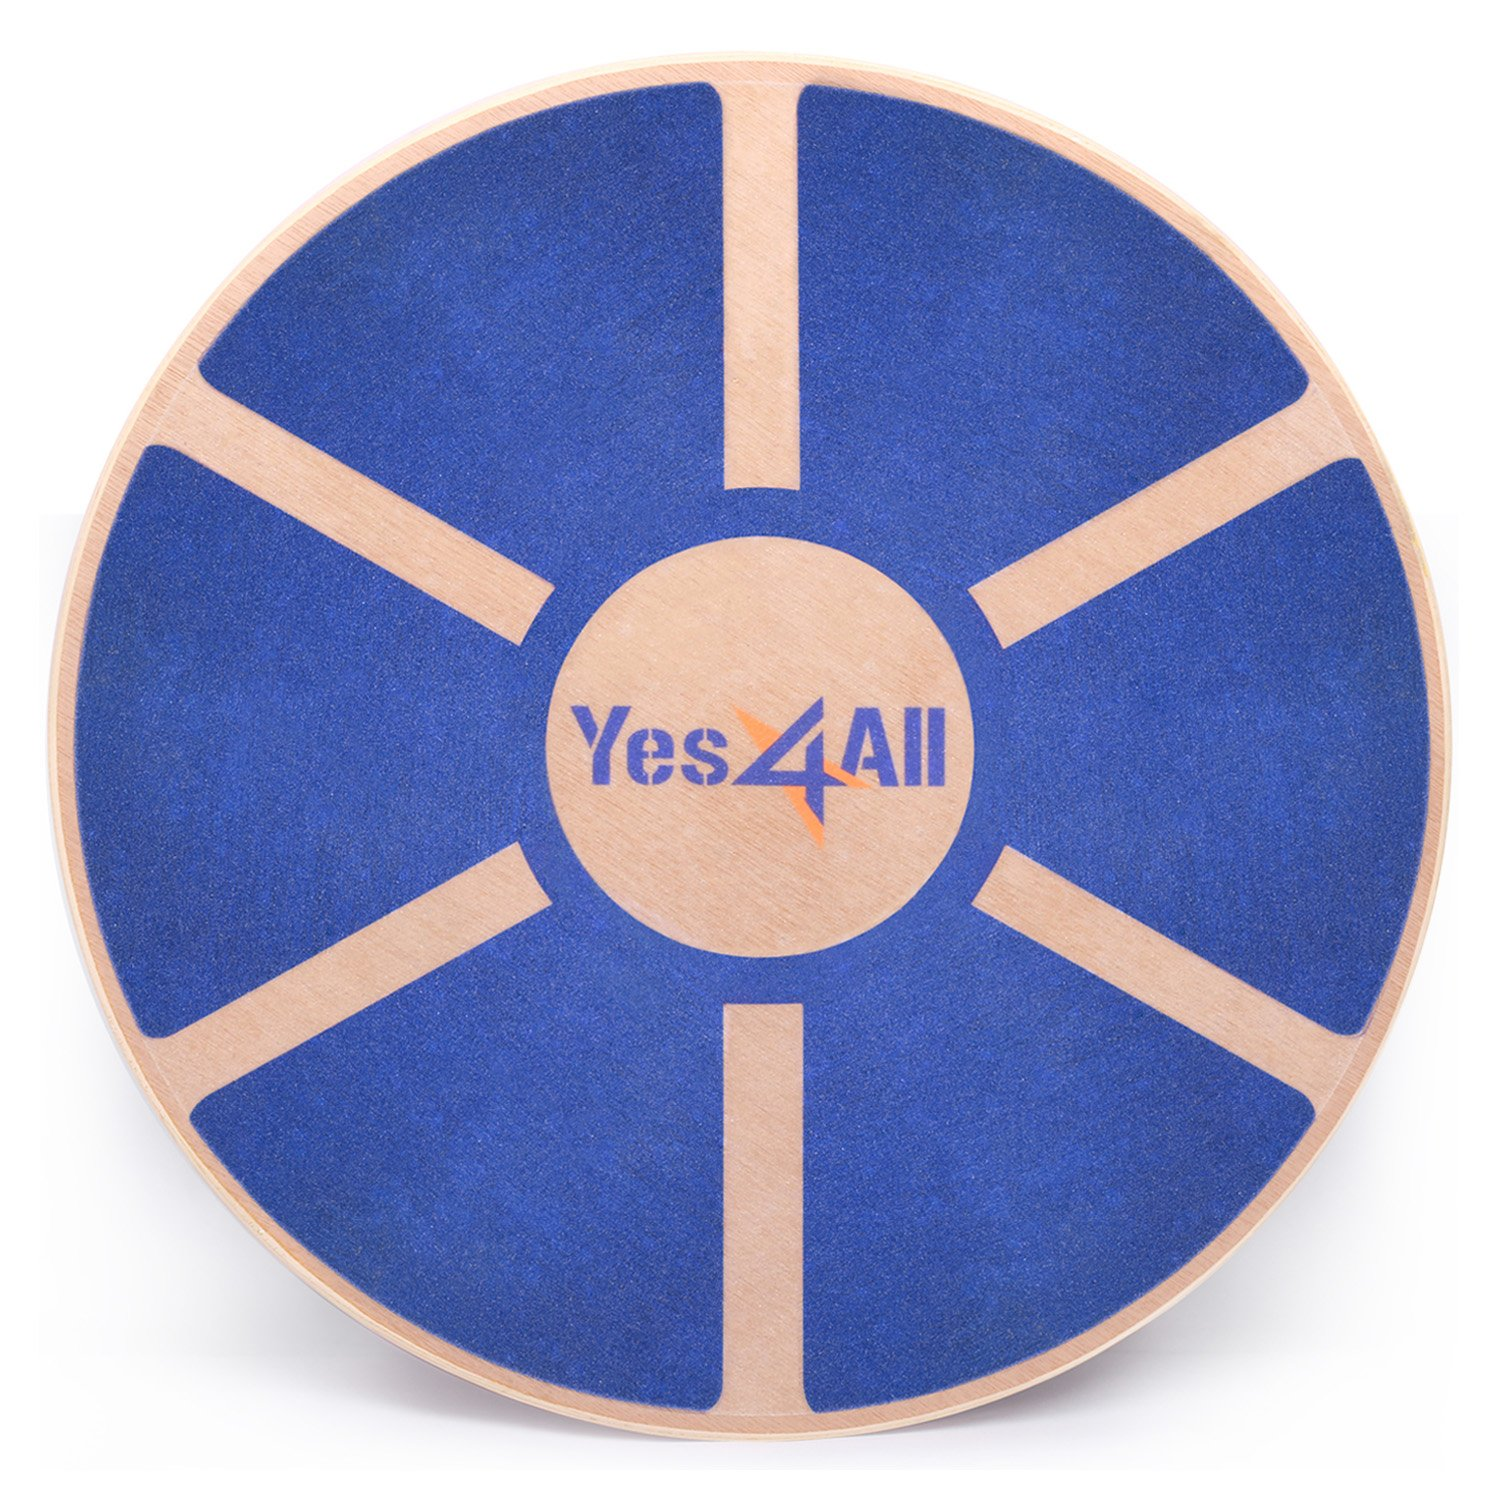 Yes4All Wooden Wobble Balance Board – Exercise Balance Stability Trainer 15.75 inch Diameter